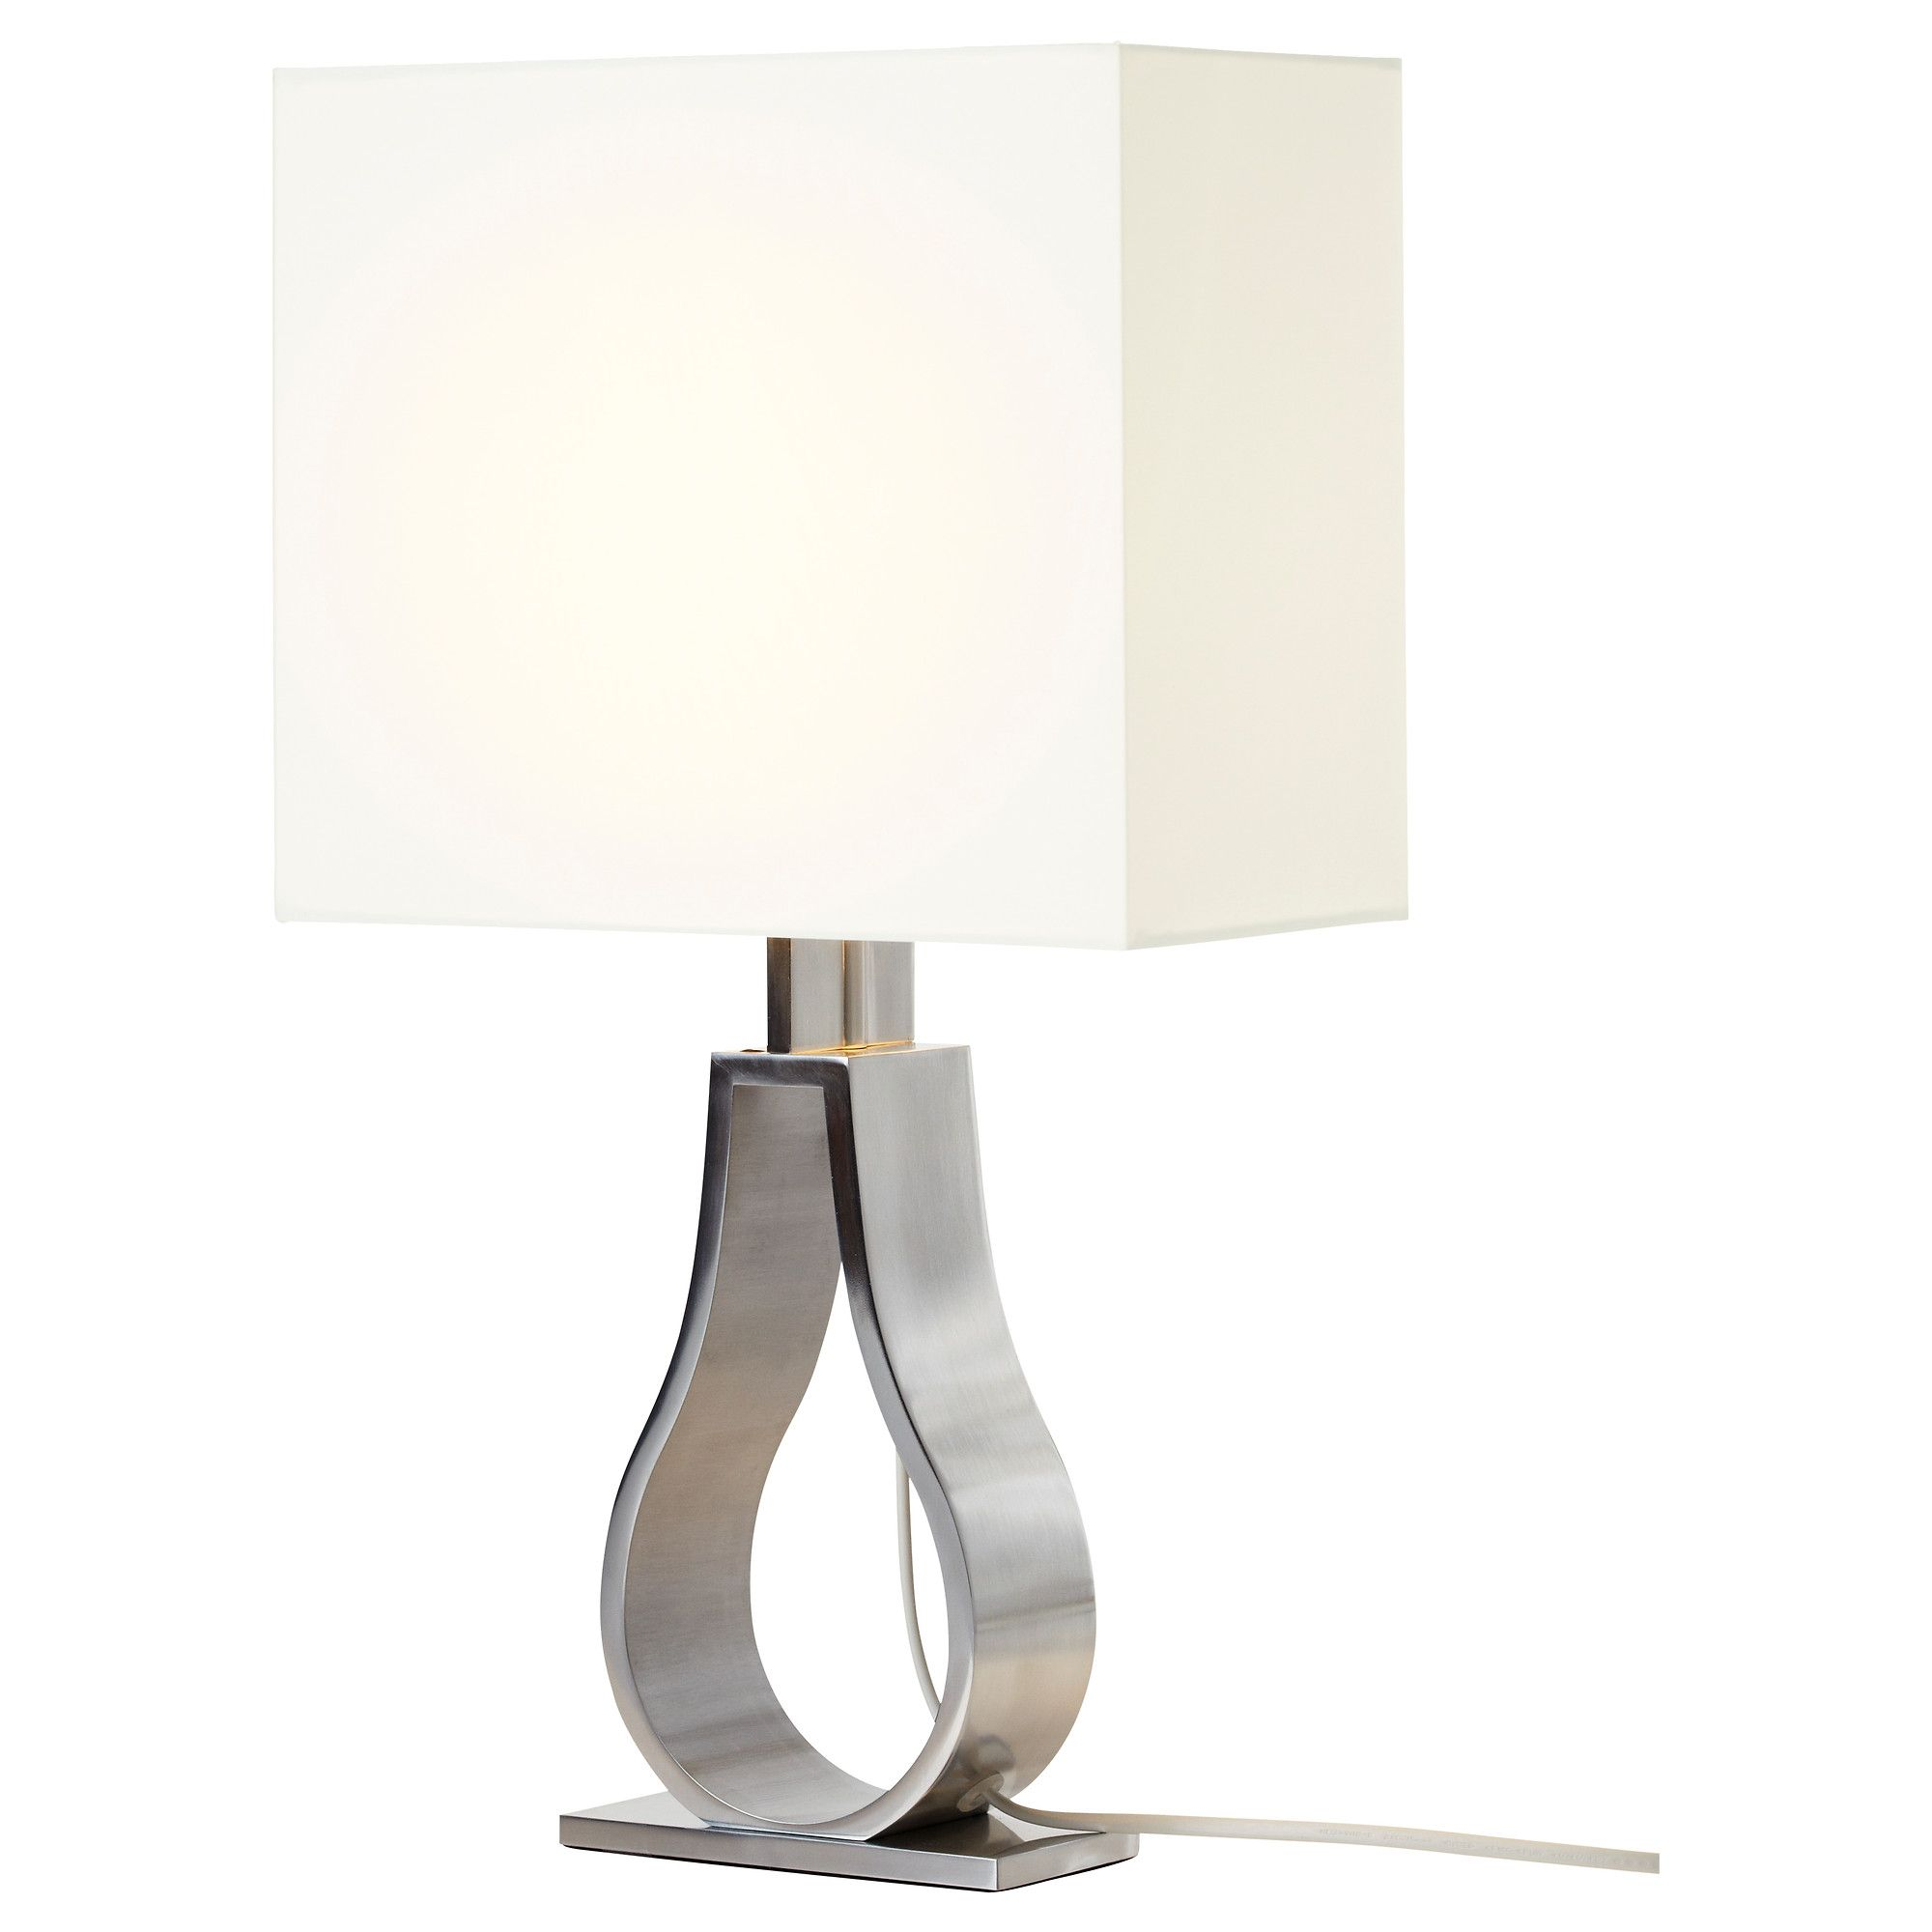 klabb floor lamp ikea. BEDSIDE TABLE LAMP REPLACE $29.99 Bedside Lighting//KLABB Table Lamp - IKEA -- Klabb Floor Ikea P